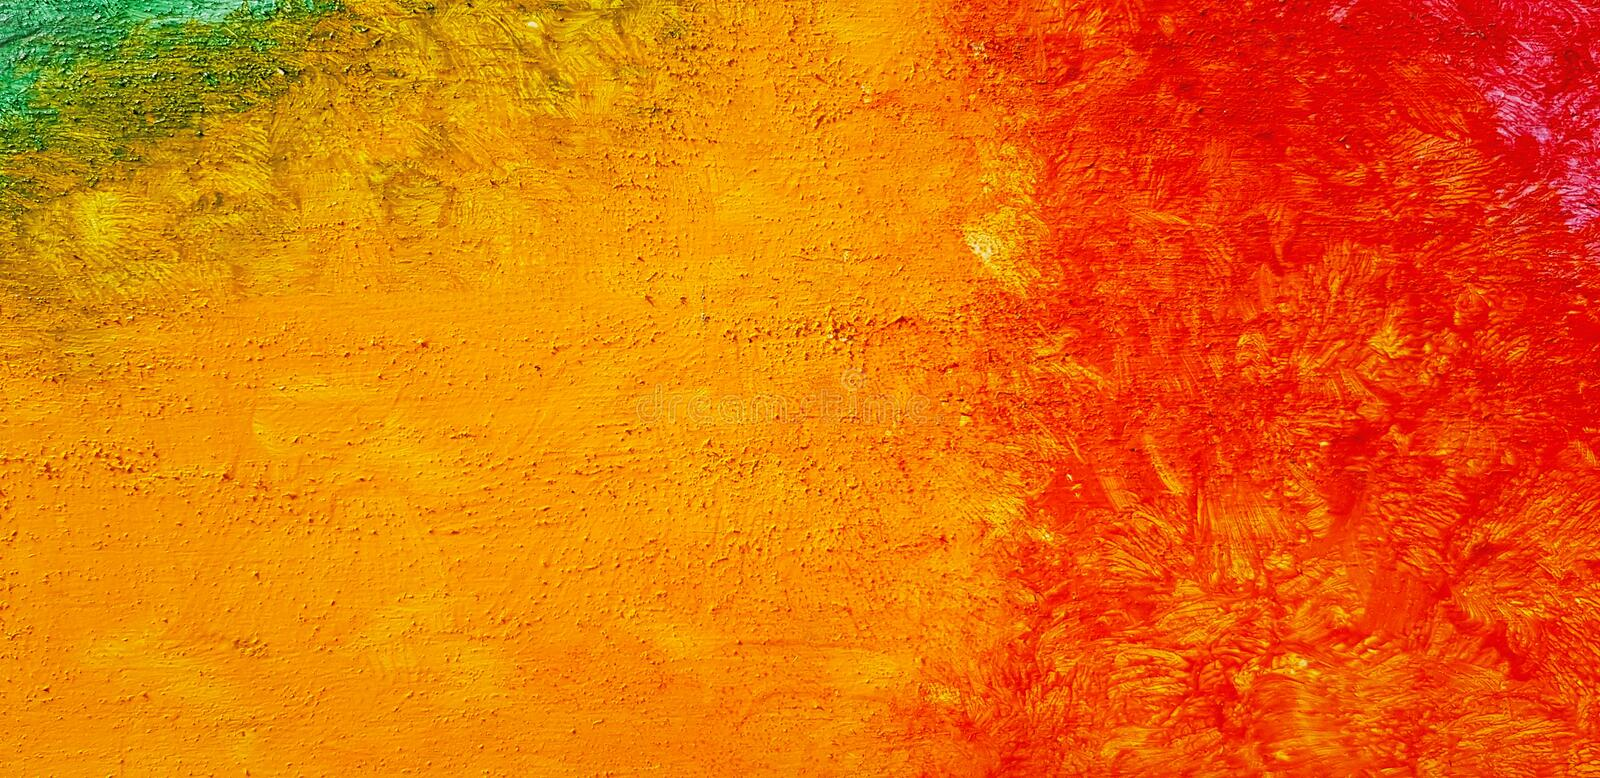 Colorful yellow and red painted on wall for background. Art wallpaper with acrylic color vector illustration